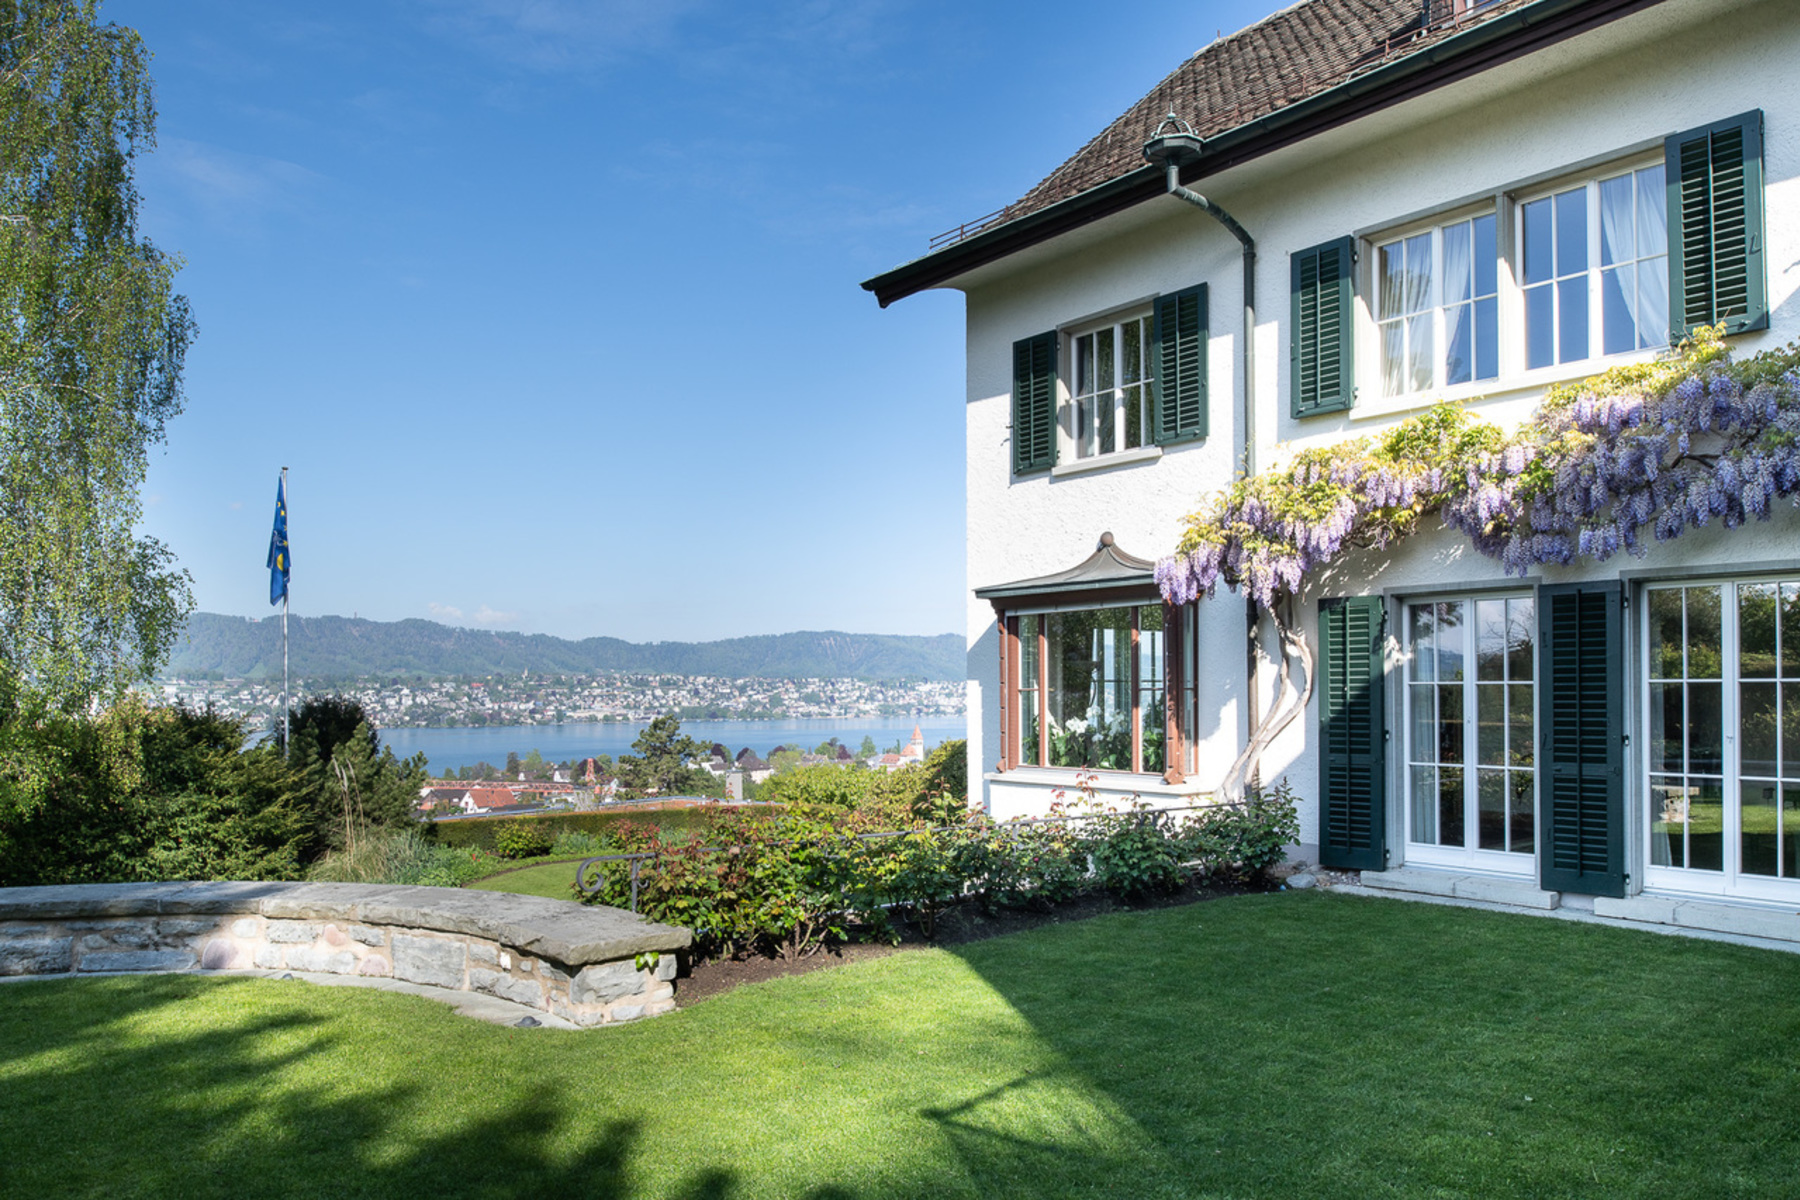 Additional photo for property listing at Country house villa with lake view an erhöhter Lage Other Zurich, 苏黎世 8700 瑞士